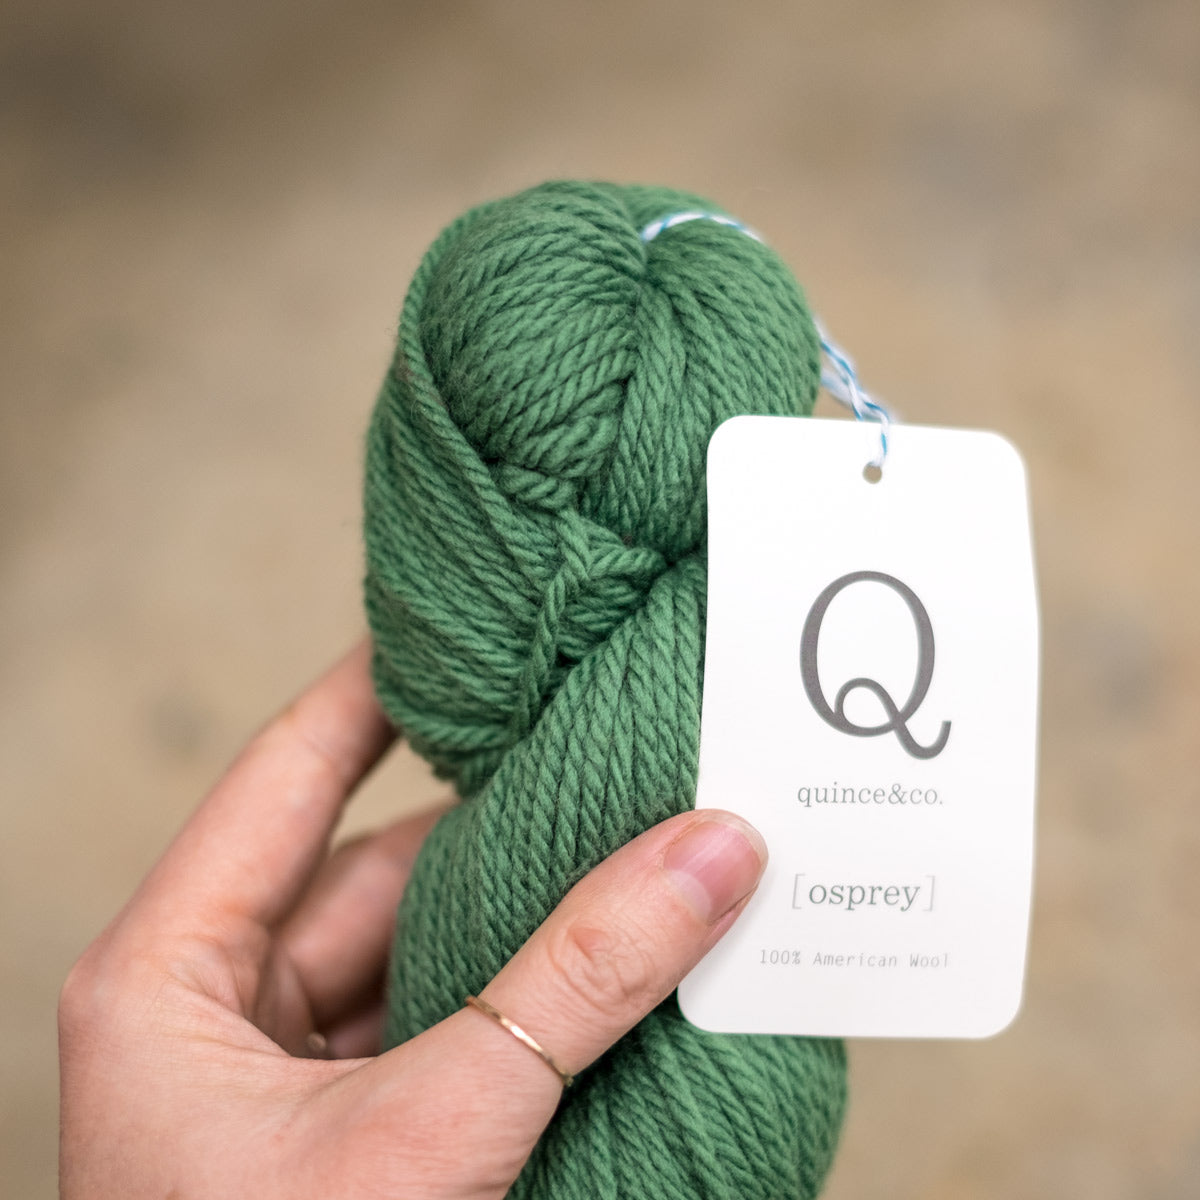 a skein of Quince and Co Osprey yarn in Parsley, a vibrant green